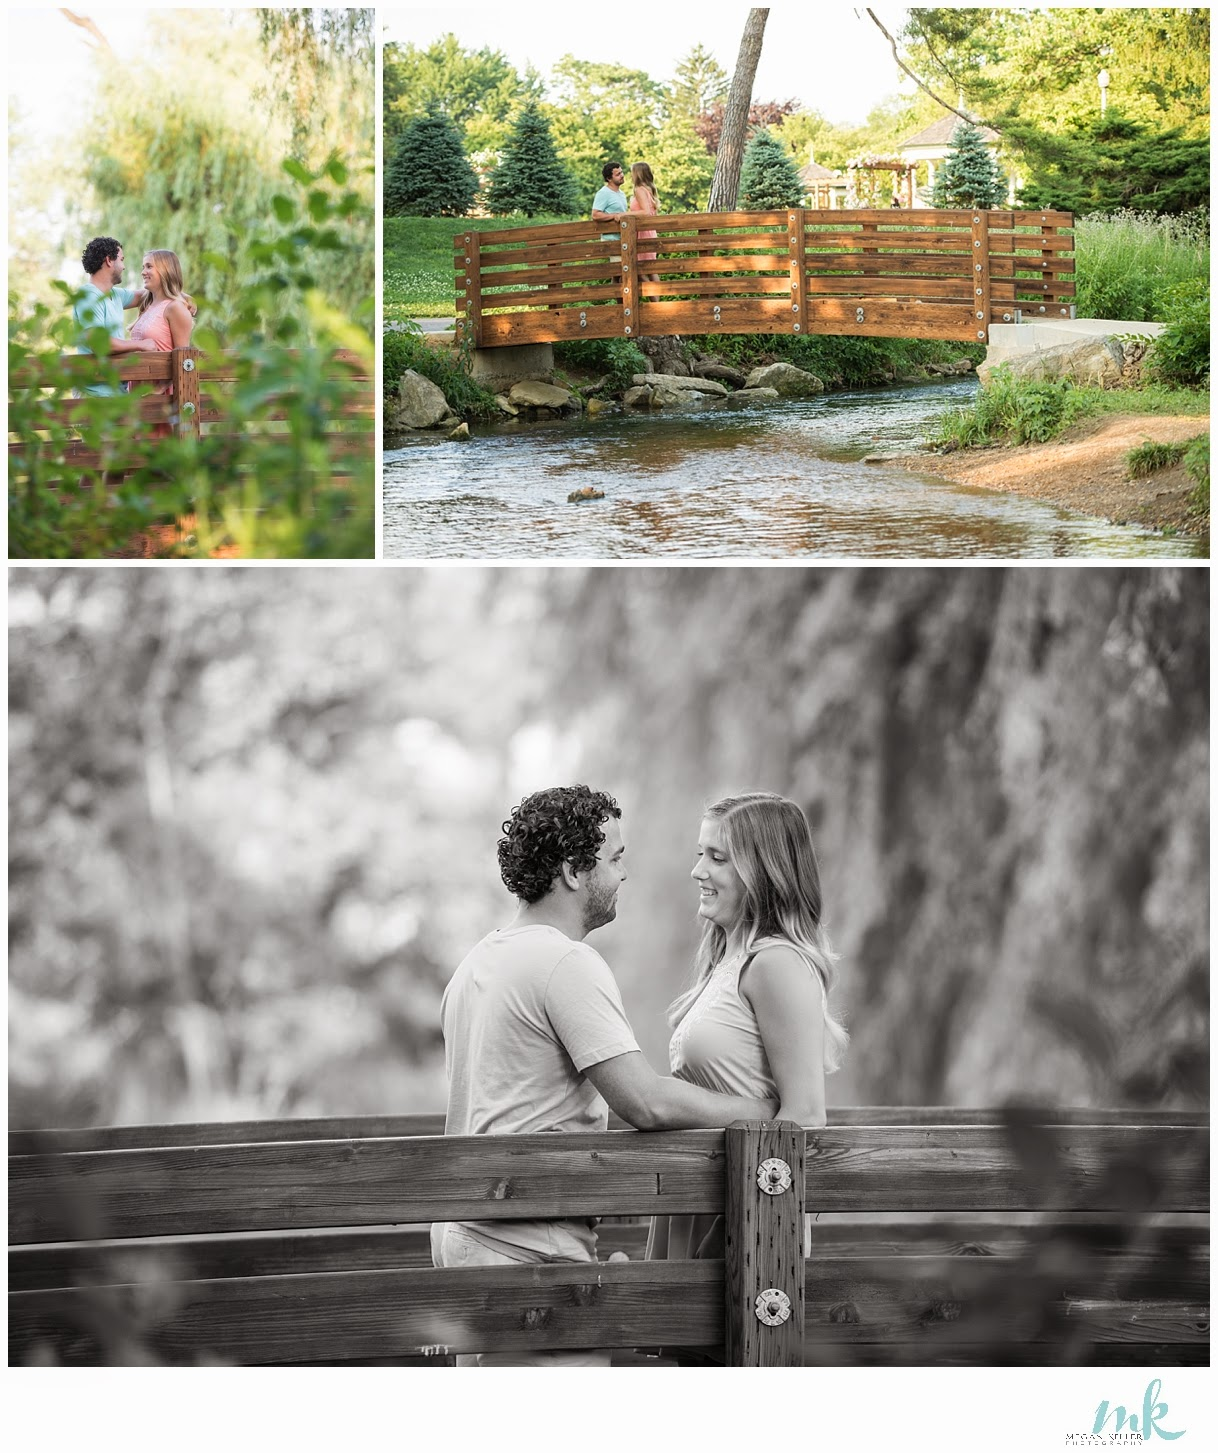 Breanna and Lucas Engagement Session Breanna and Lucas Engagement Session 2014 07 02 0001